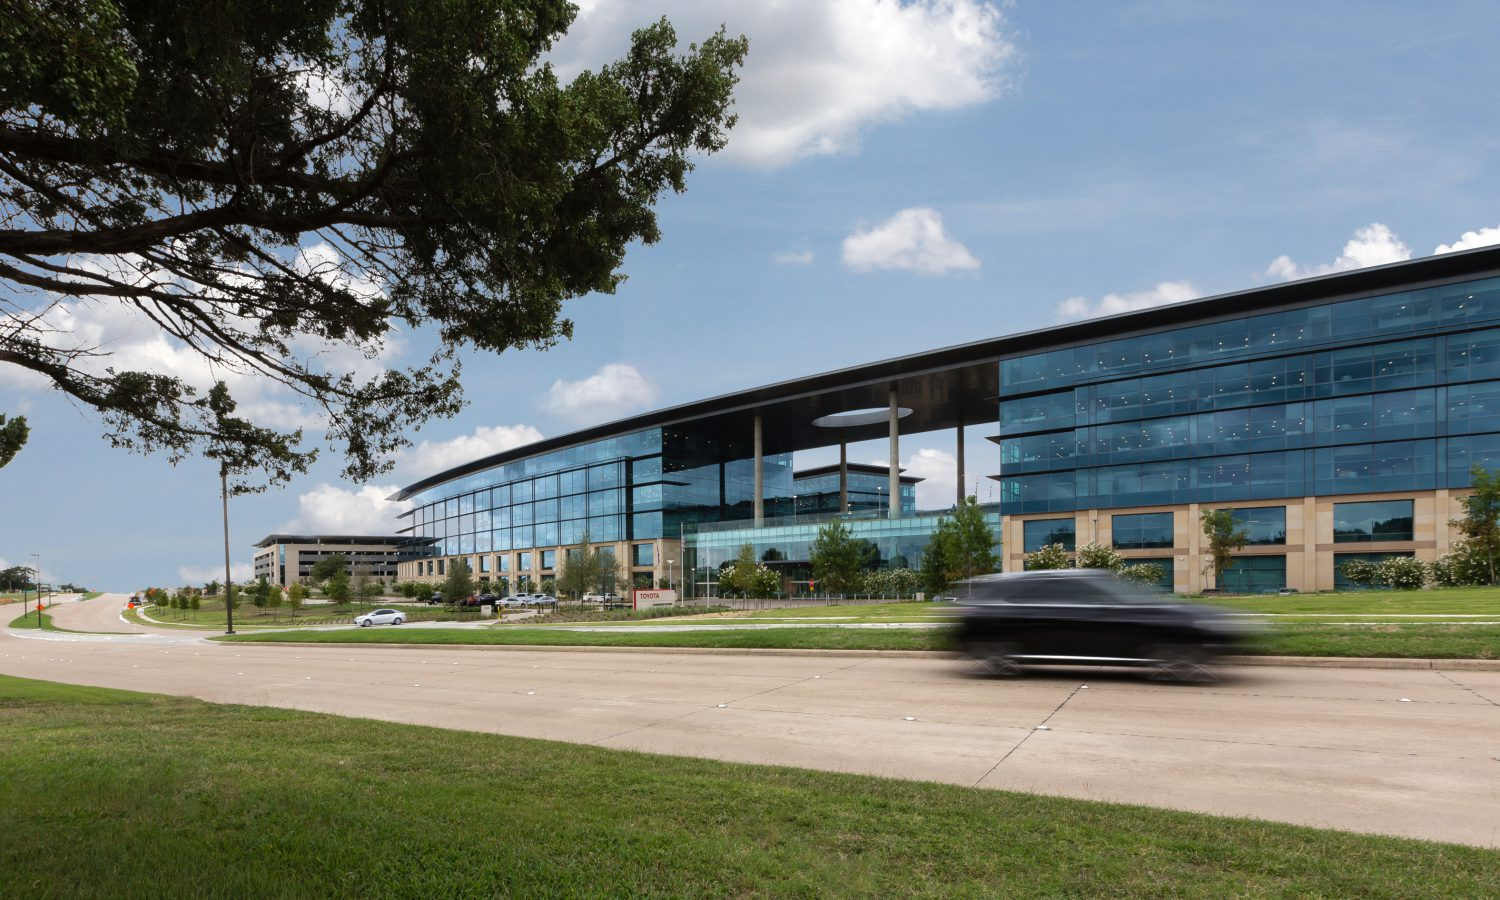 Toyota Headquarters Plano Texas >> Toyota Opens Billion Dollar State Of The Art North American